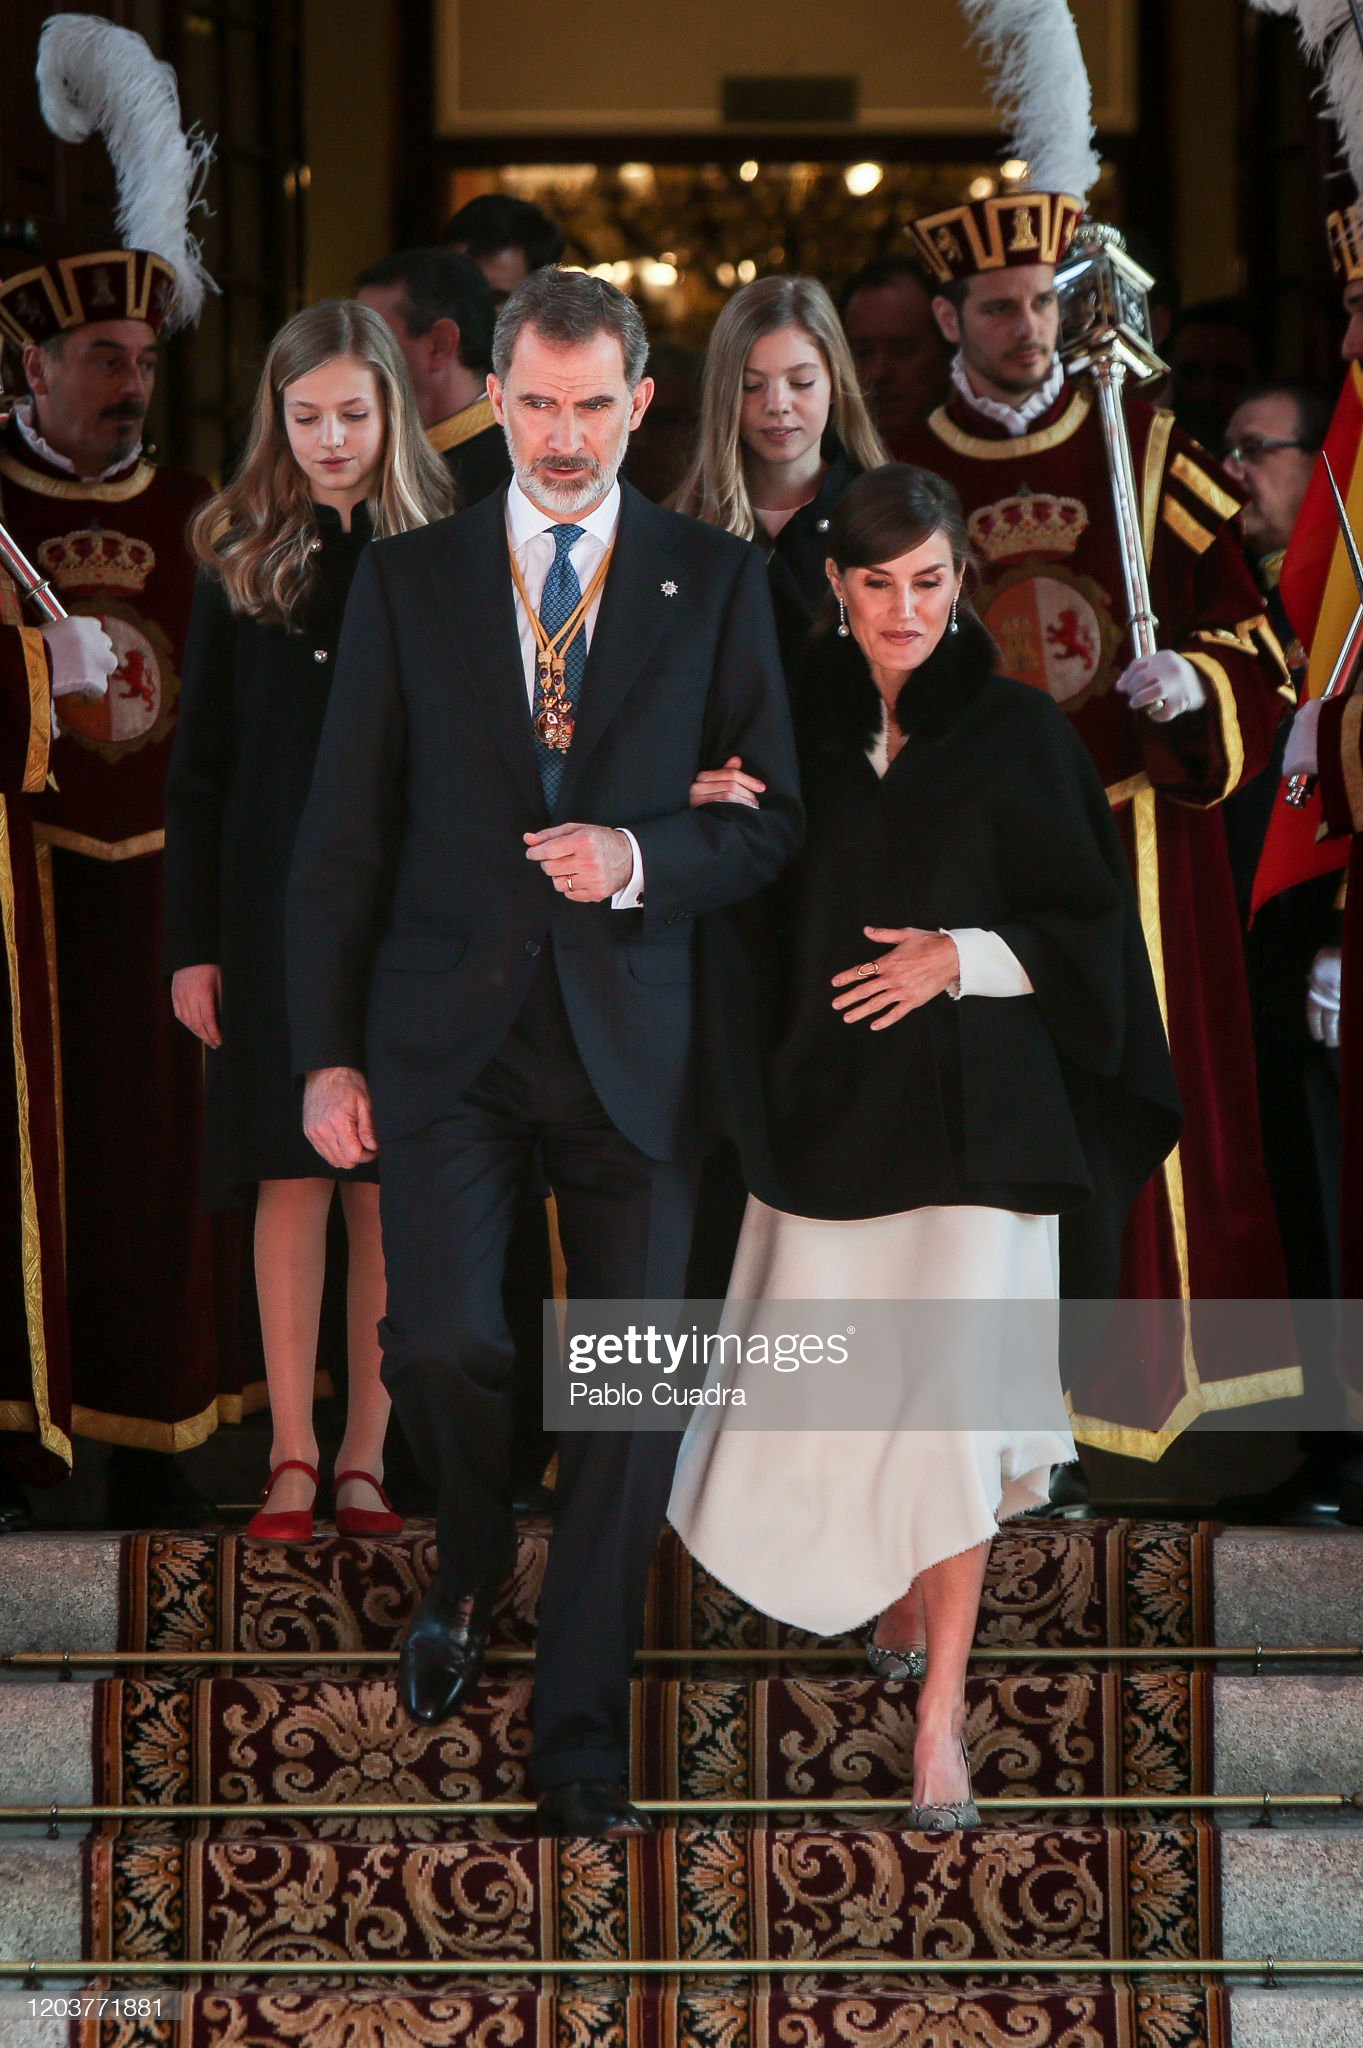 https://media.gettyimages.com/photos/king-felipe-vi-of-spain-queen-letizia-of-spain-princess-leonor-of-picture-id1203771881?s=2048x2048